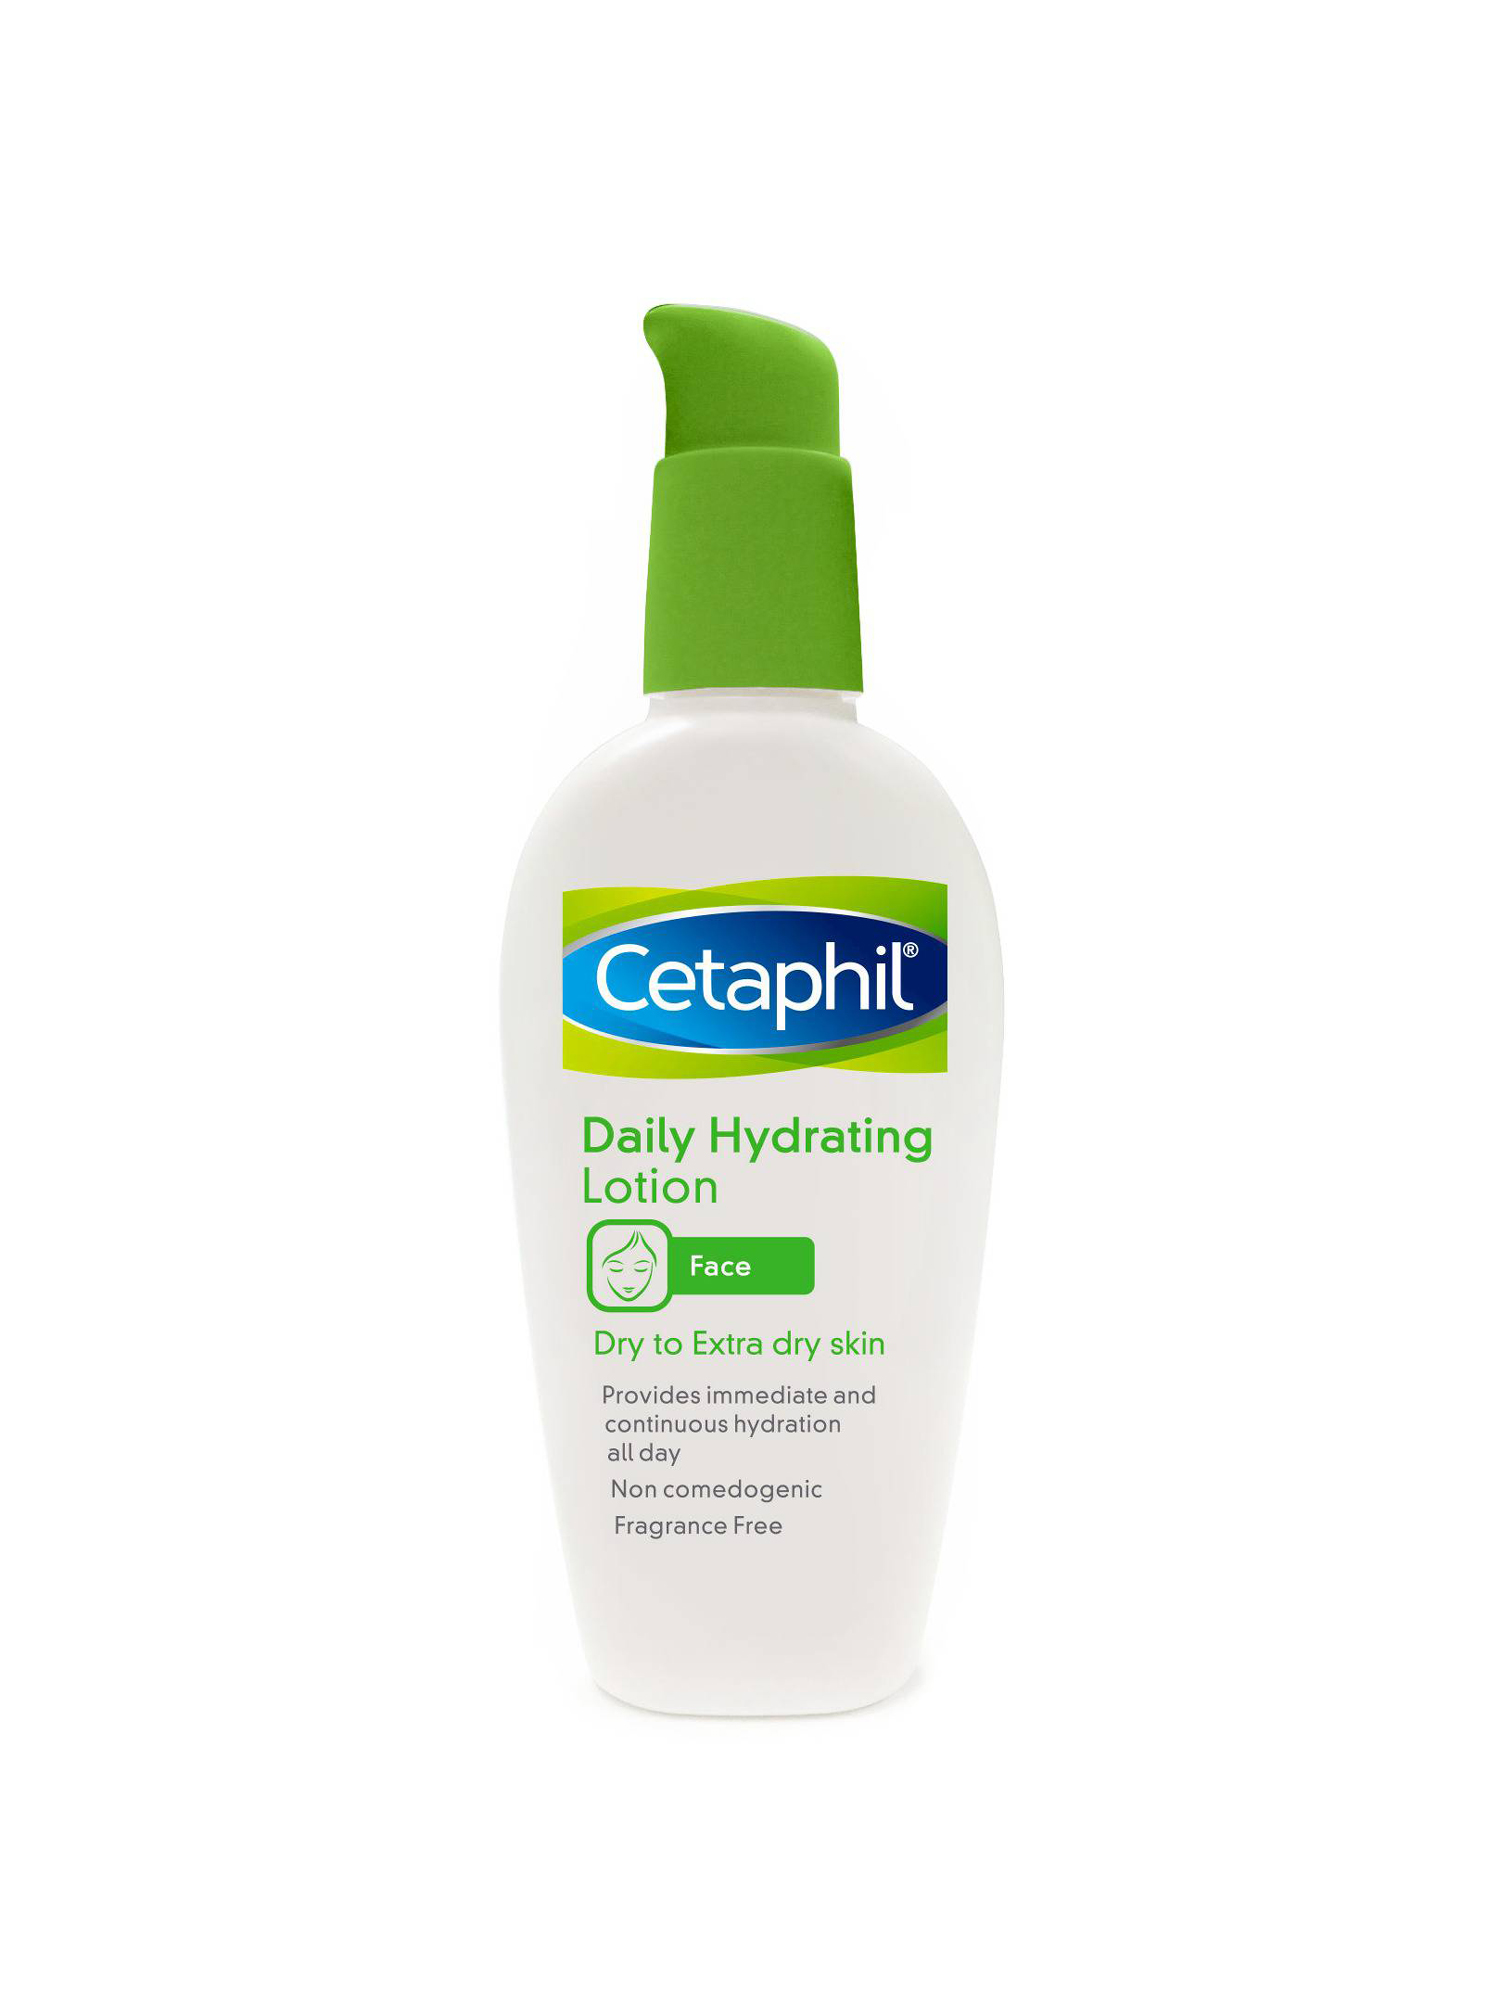 good moisturizer for dry skin